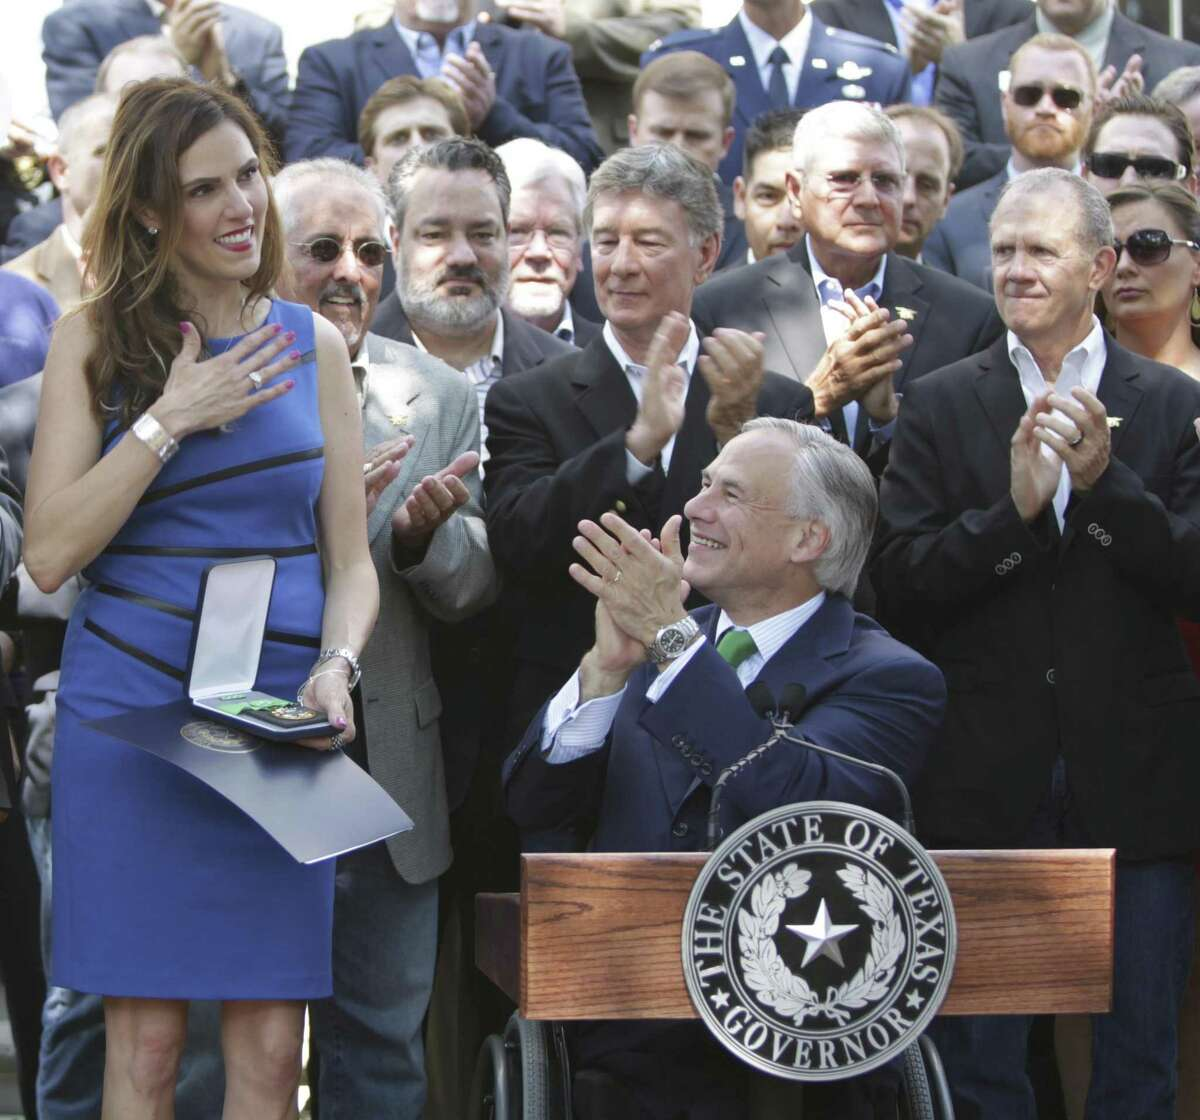 Taya Kyle, left, reacts Wednesday Aug. 26, 2015 after receiving her husband, Chief Petty Officer Chris Kyle's posthumous Texas Legislative Medal of Honor during a ceremony on the grounds of the governor's mansion. Behind her are veterans and current service members.